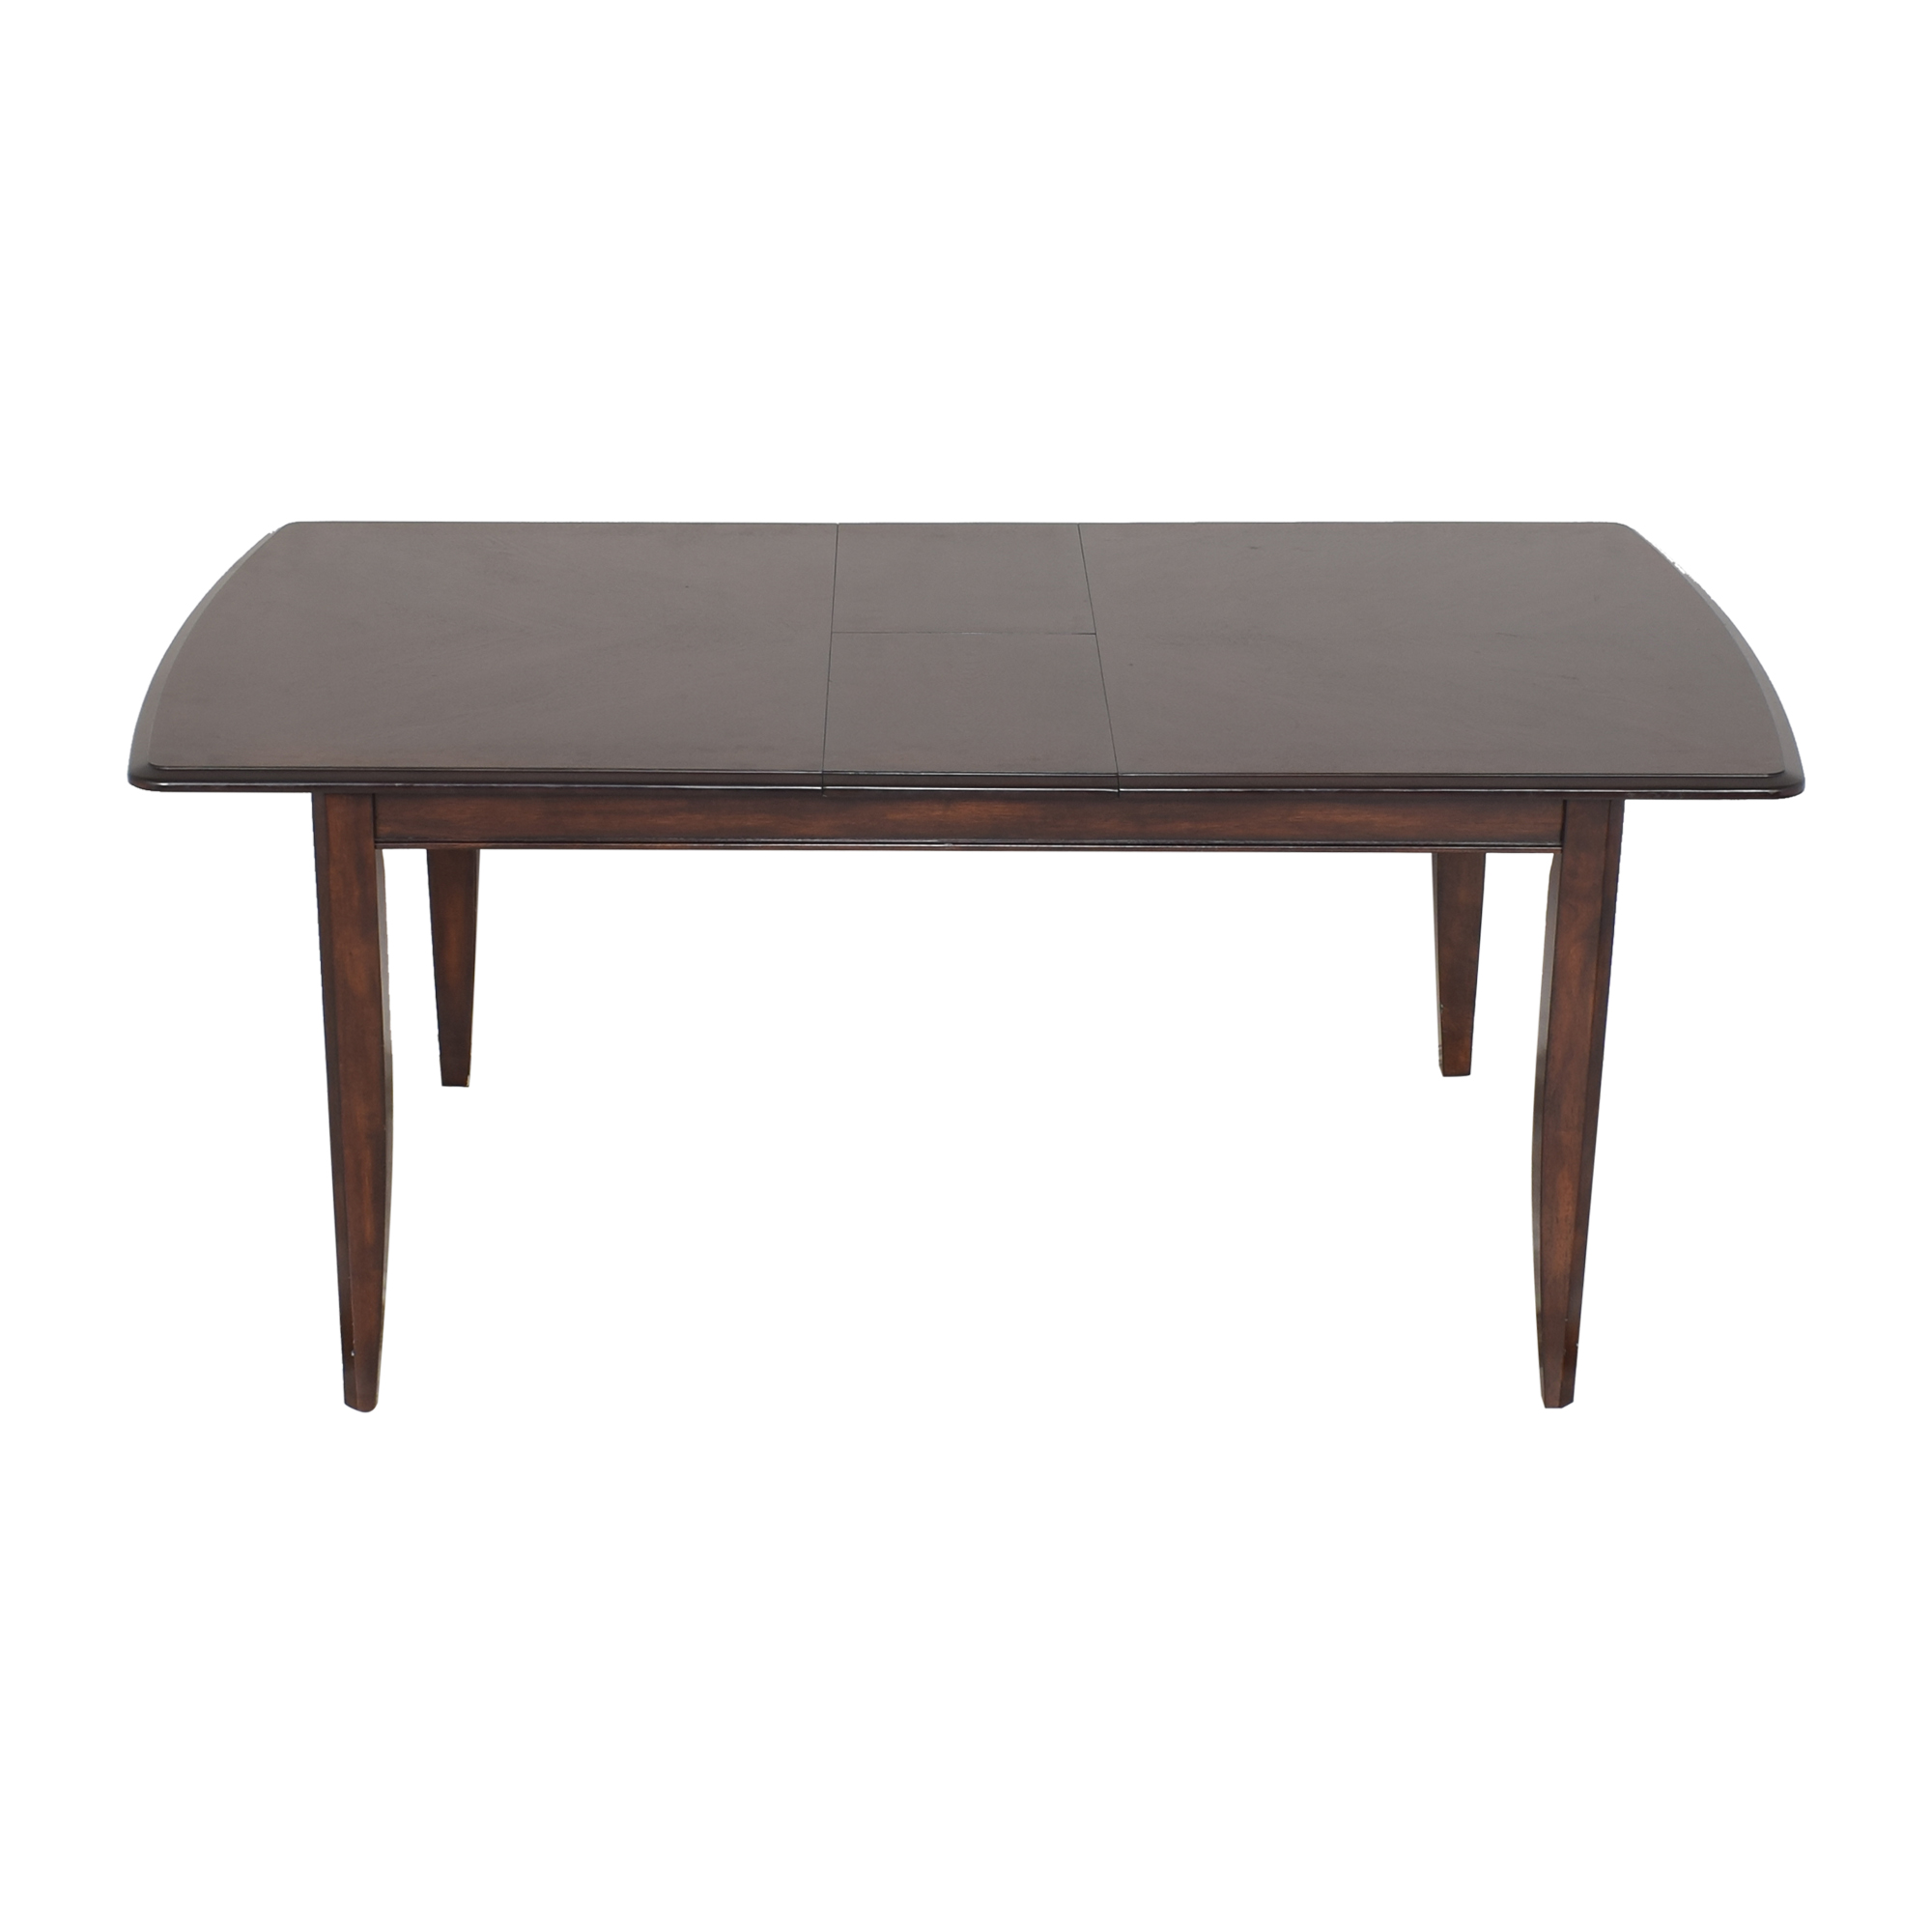 Raymour & Flanigan Raymour & Flanigan Extendable Dining Table discount